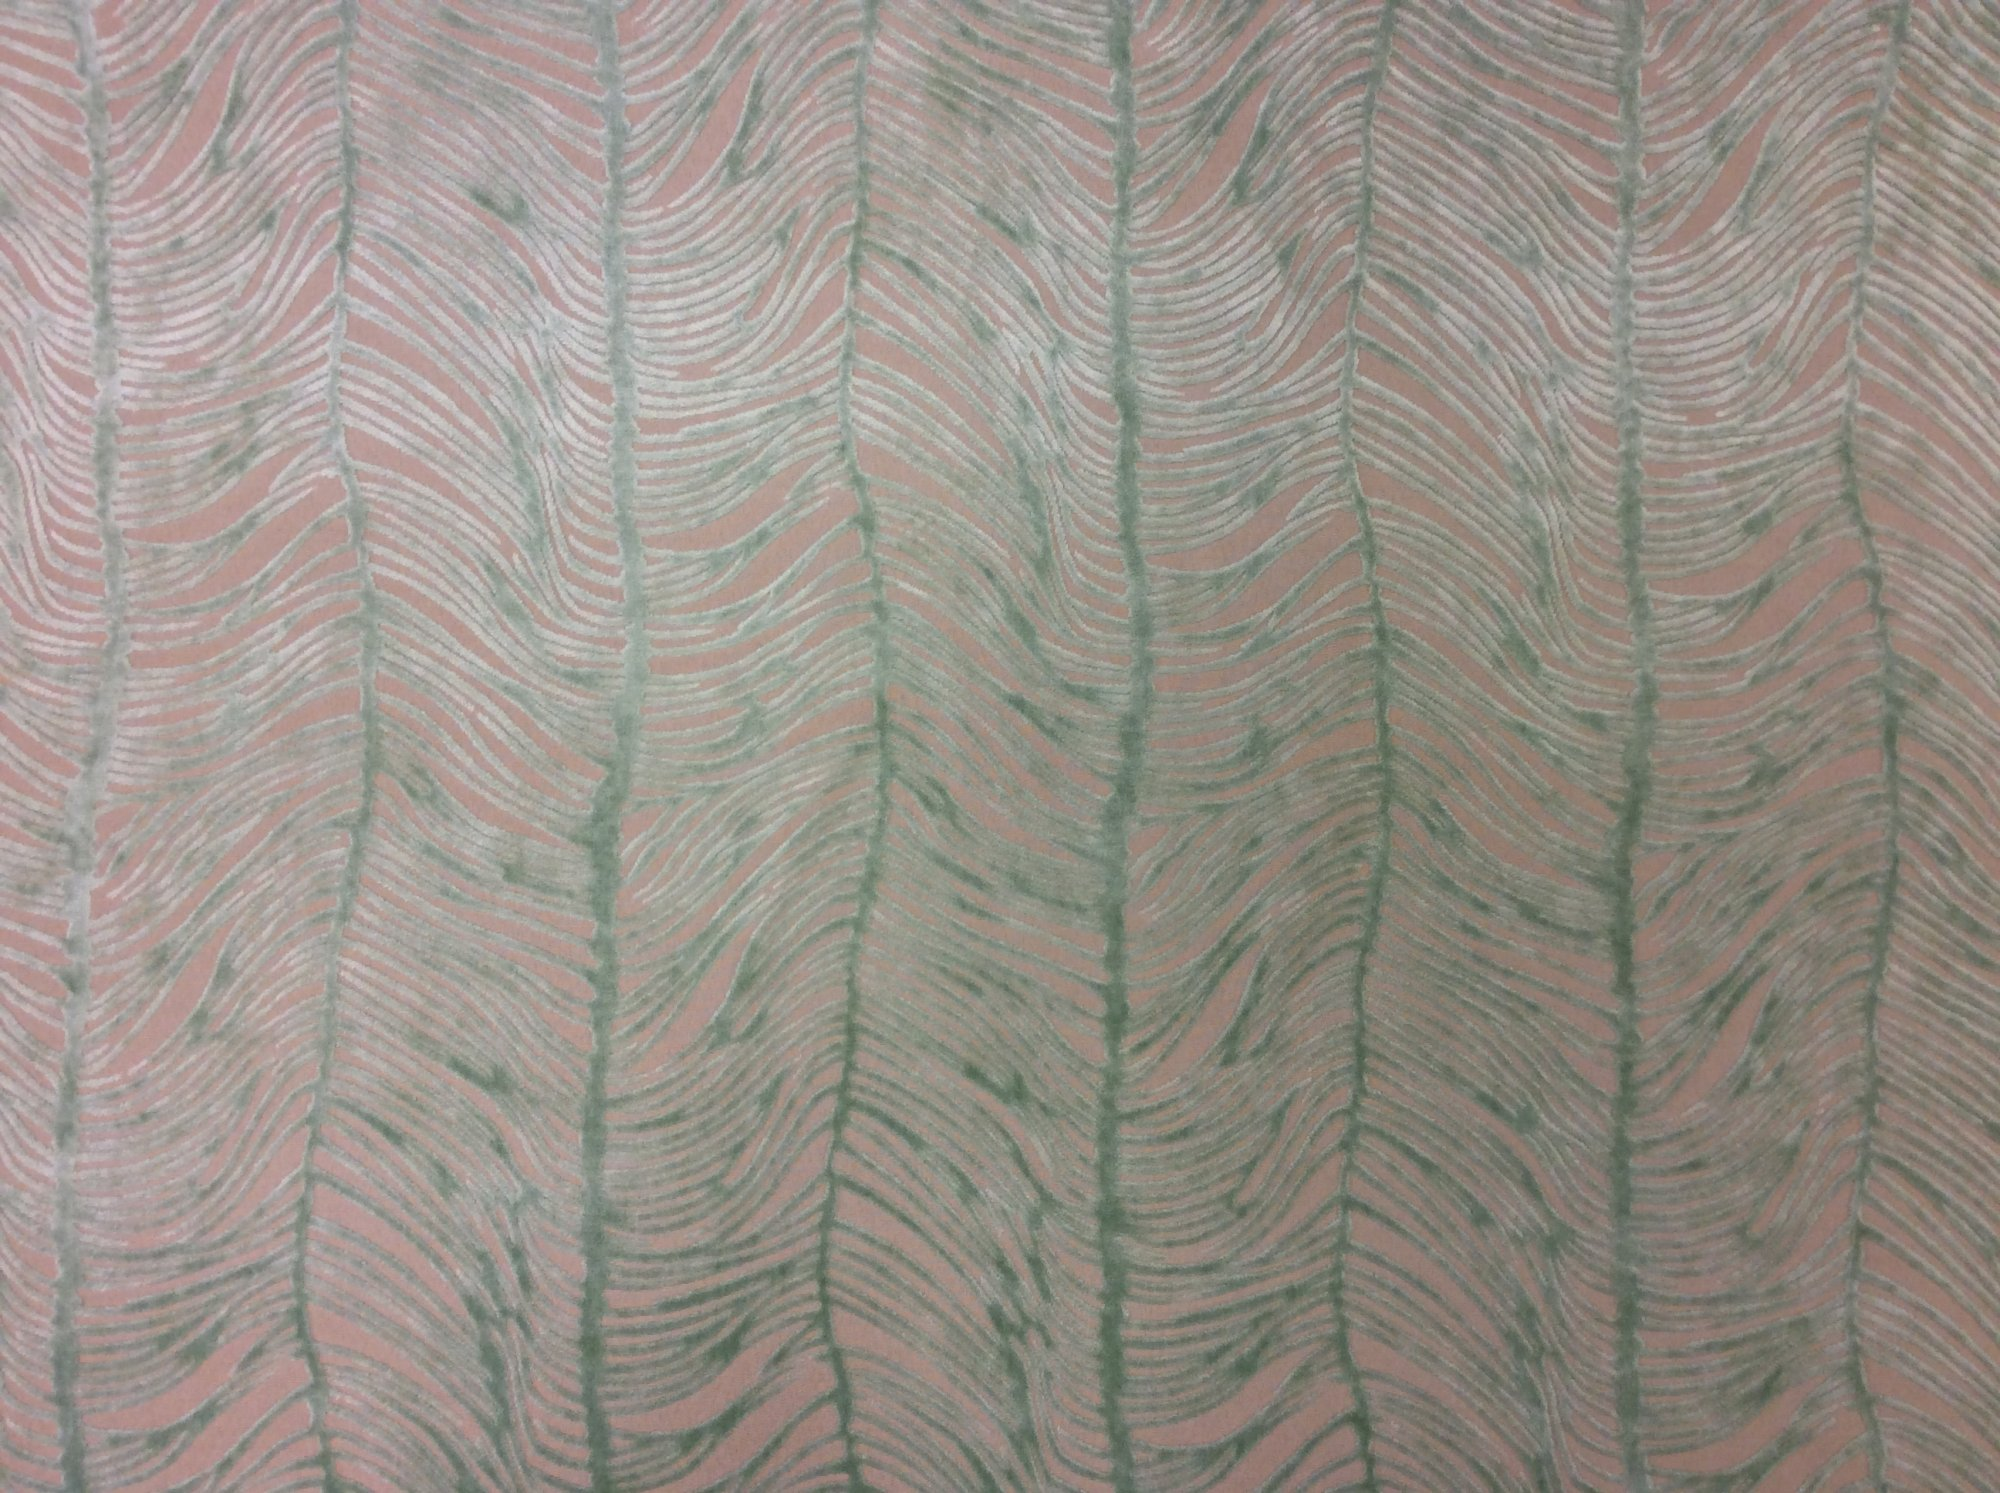 Peacock Plume Luxurious Cut Velvet Mint Green Heavy Velvet Upholstery Fabric LHD151-F